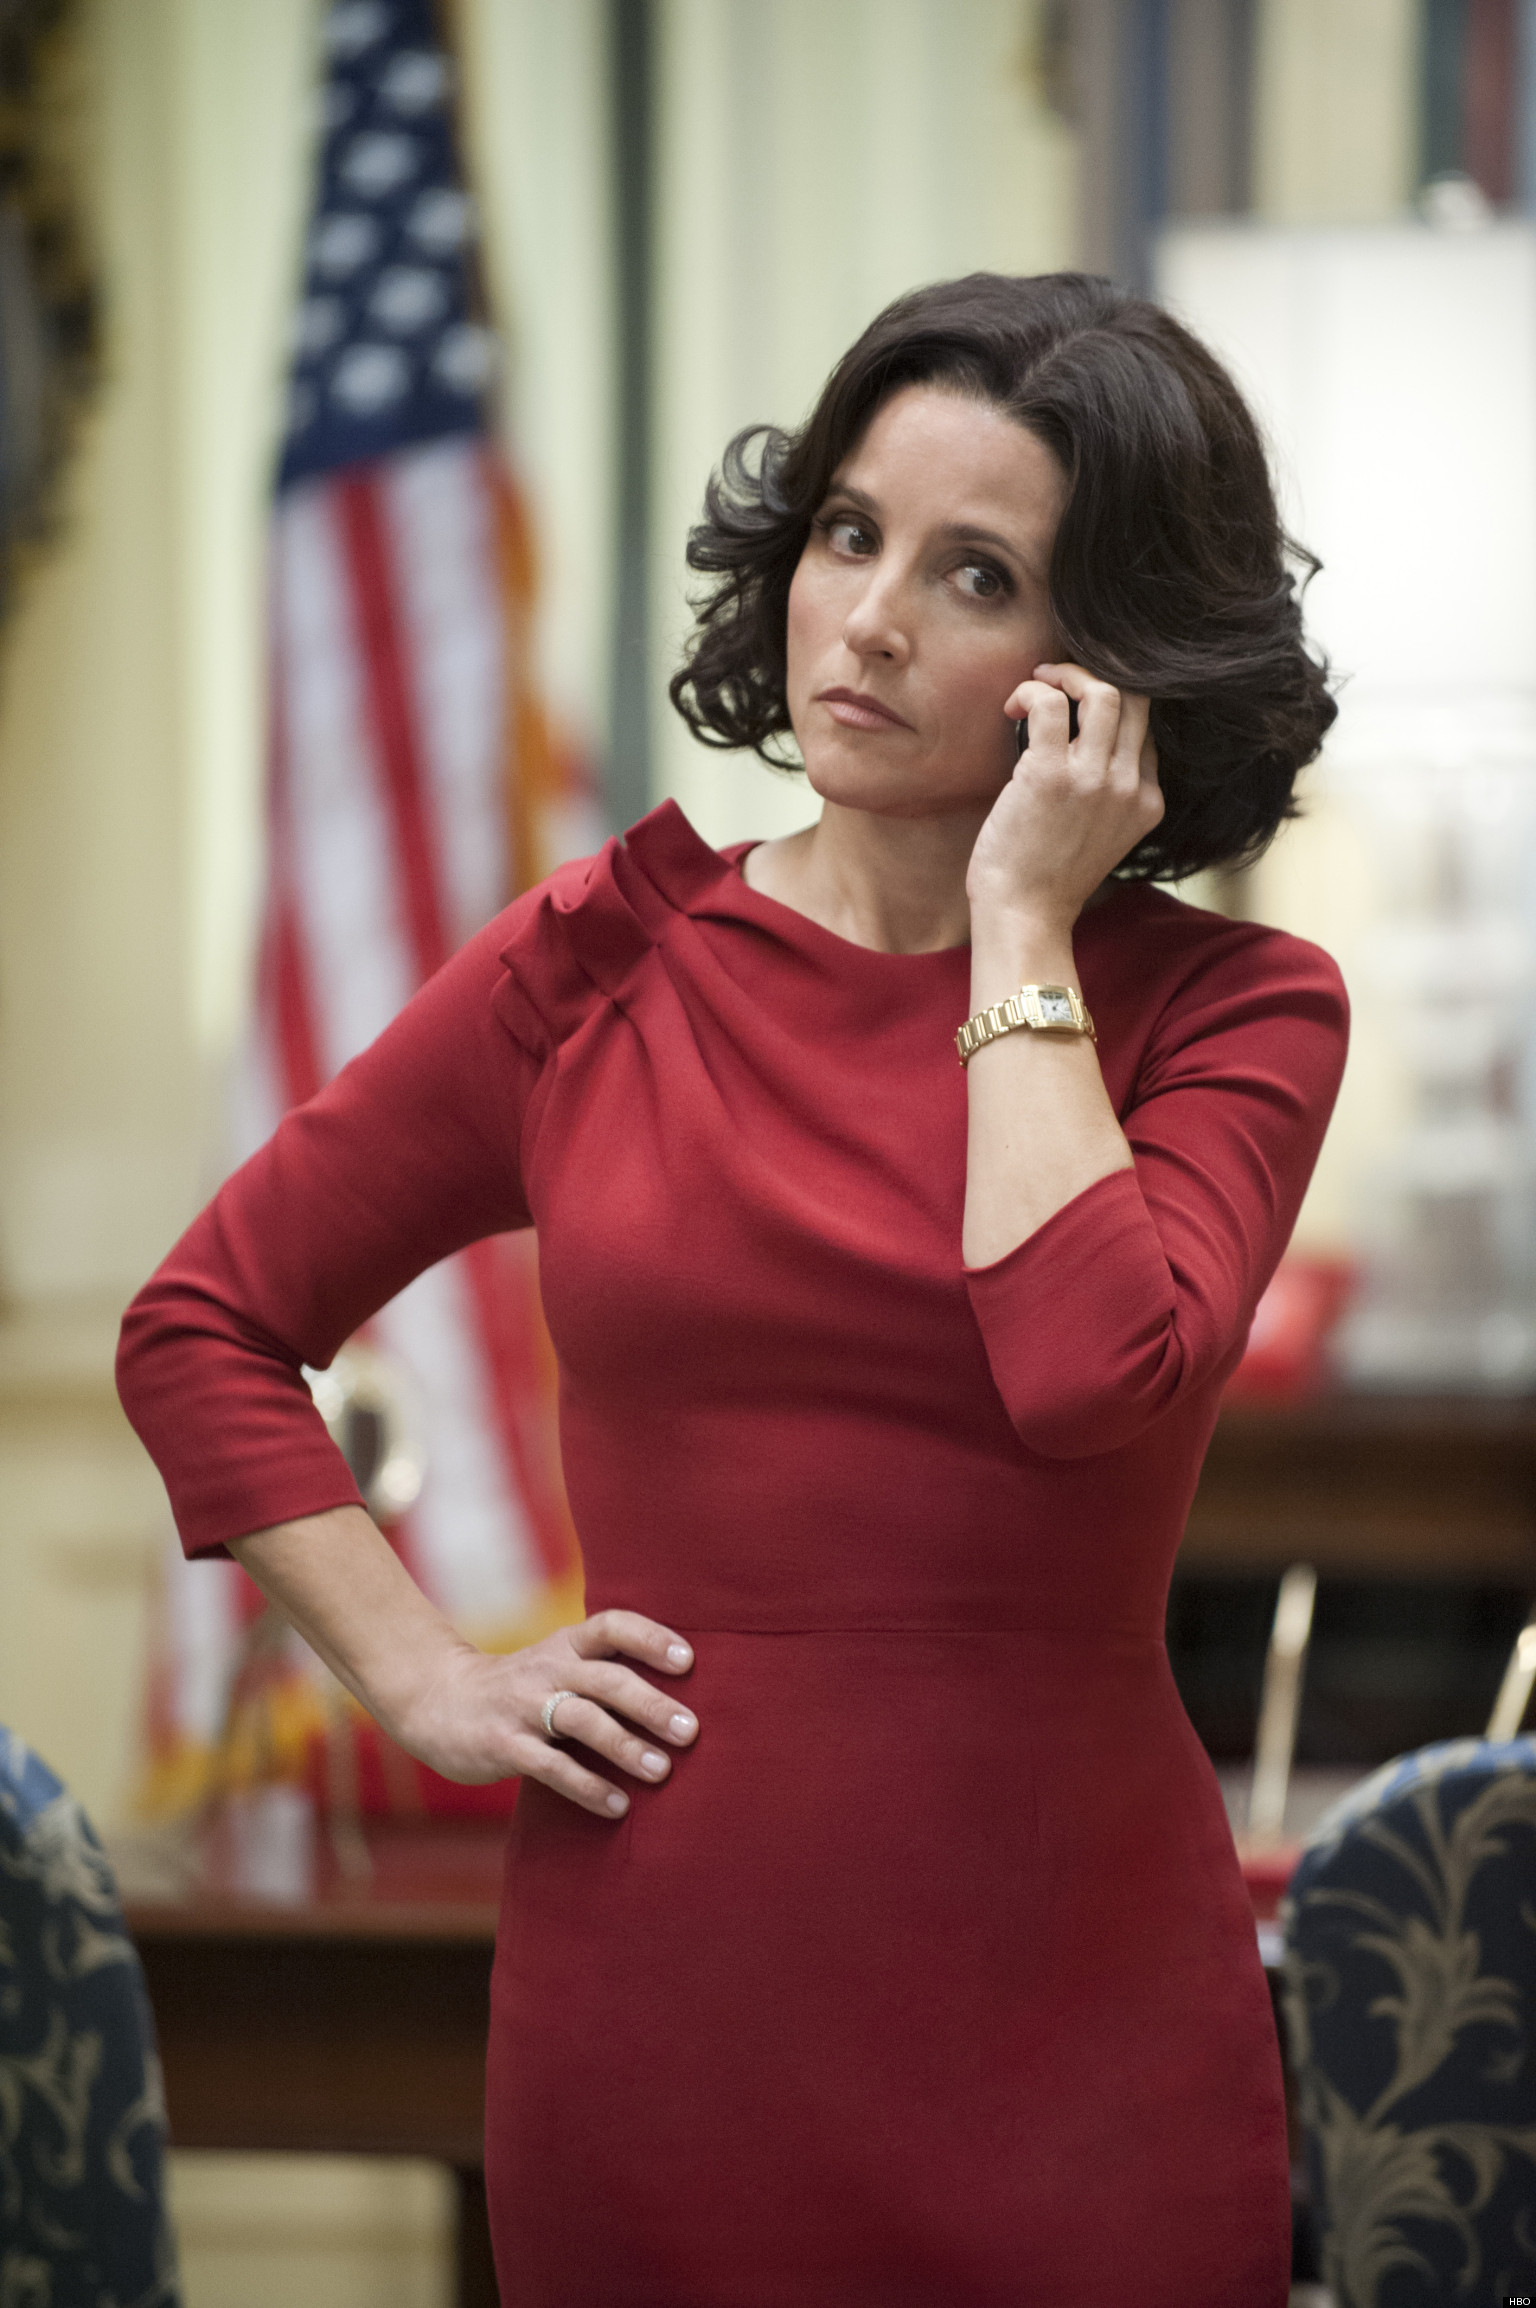 Veep Backgrounds, Compatible - PC, Mobile, Gadgets| 1536x2308 px